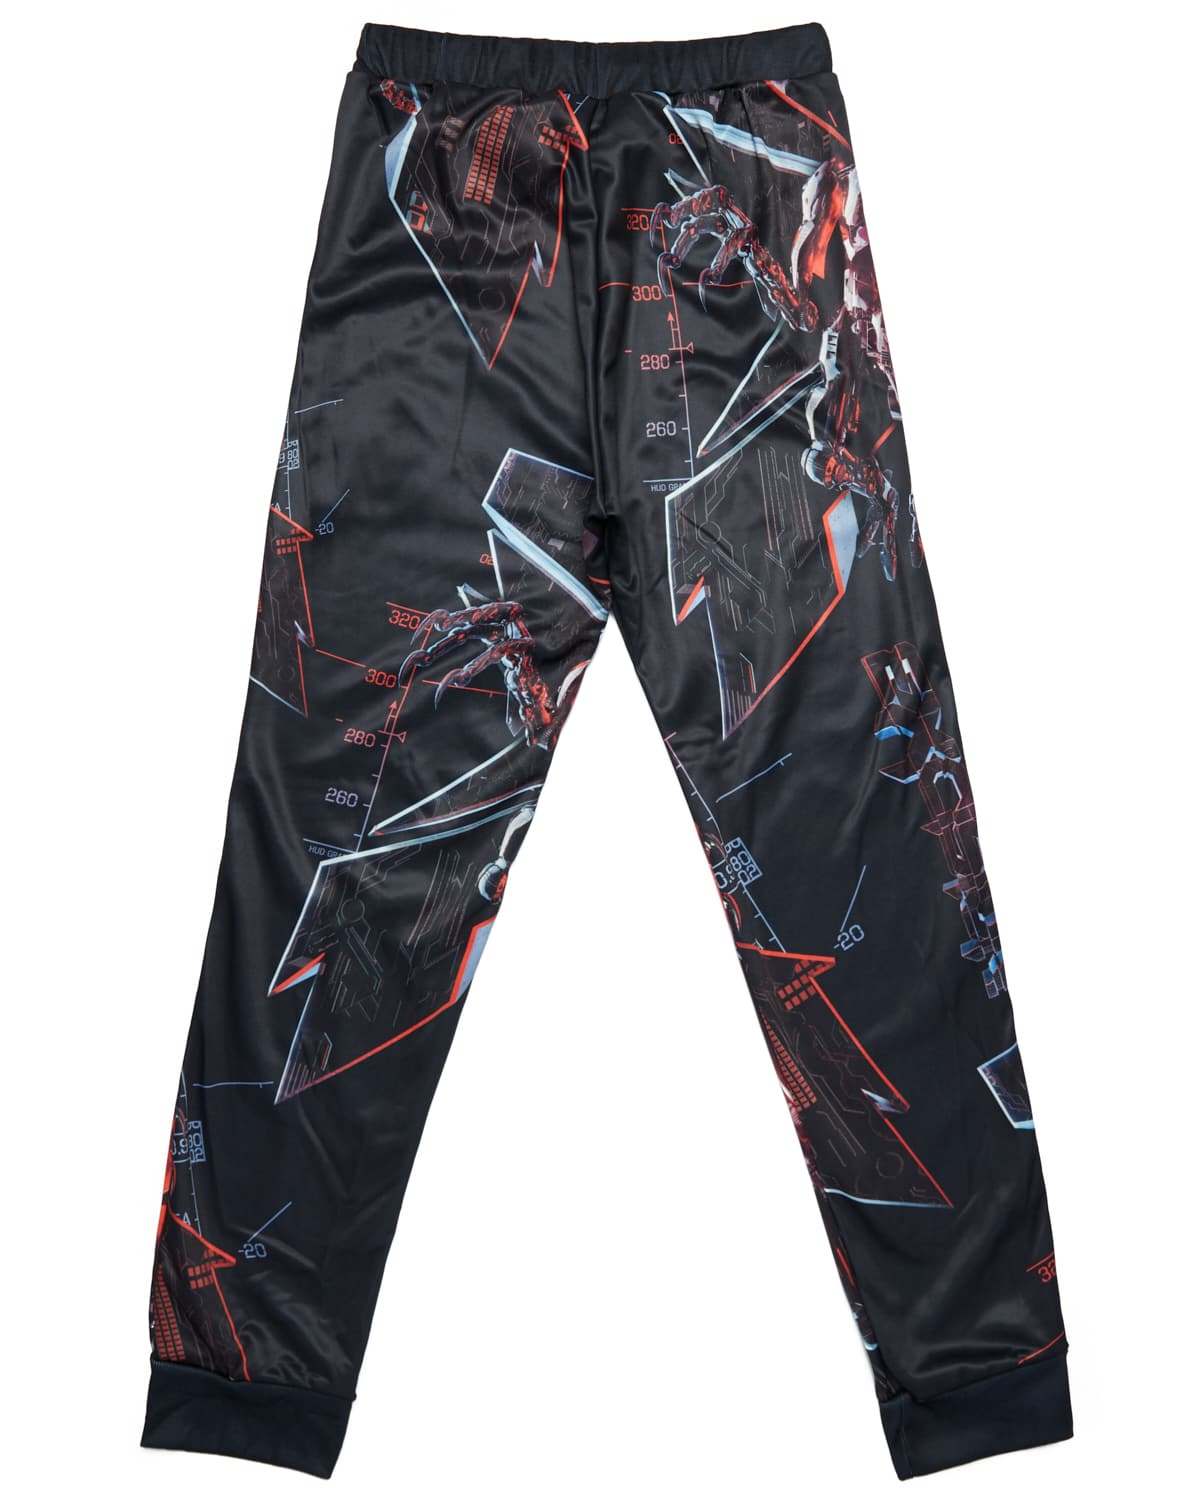 Excision 'Magnetite' Joggers - Black/Red